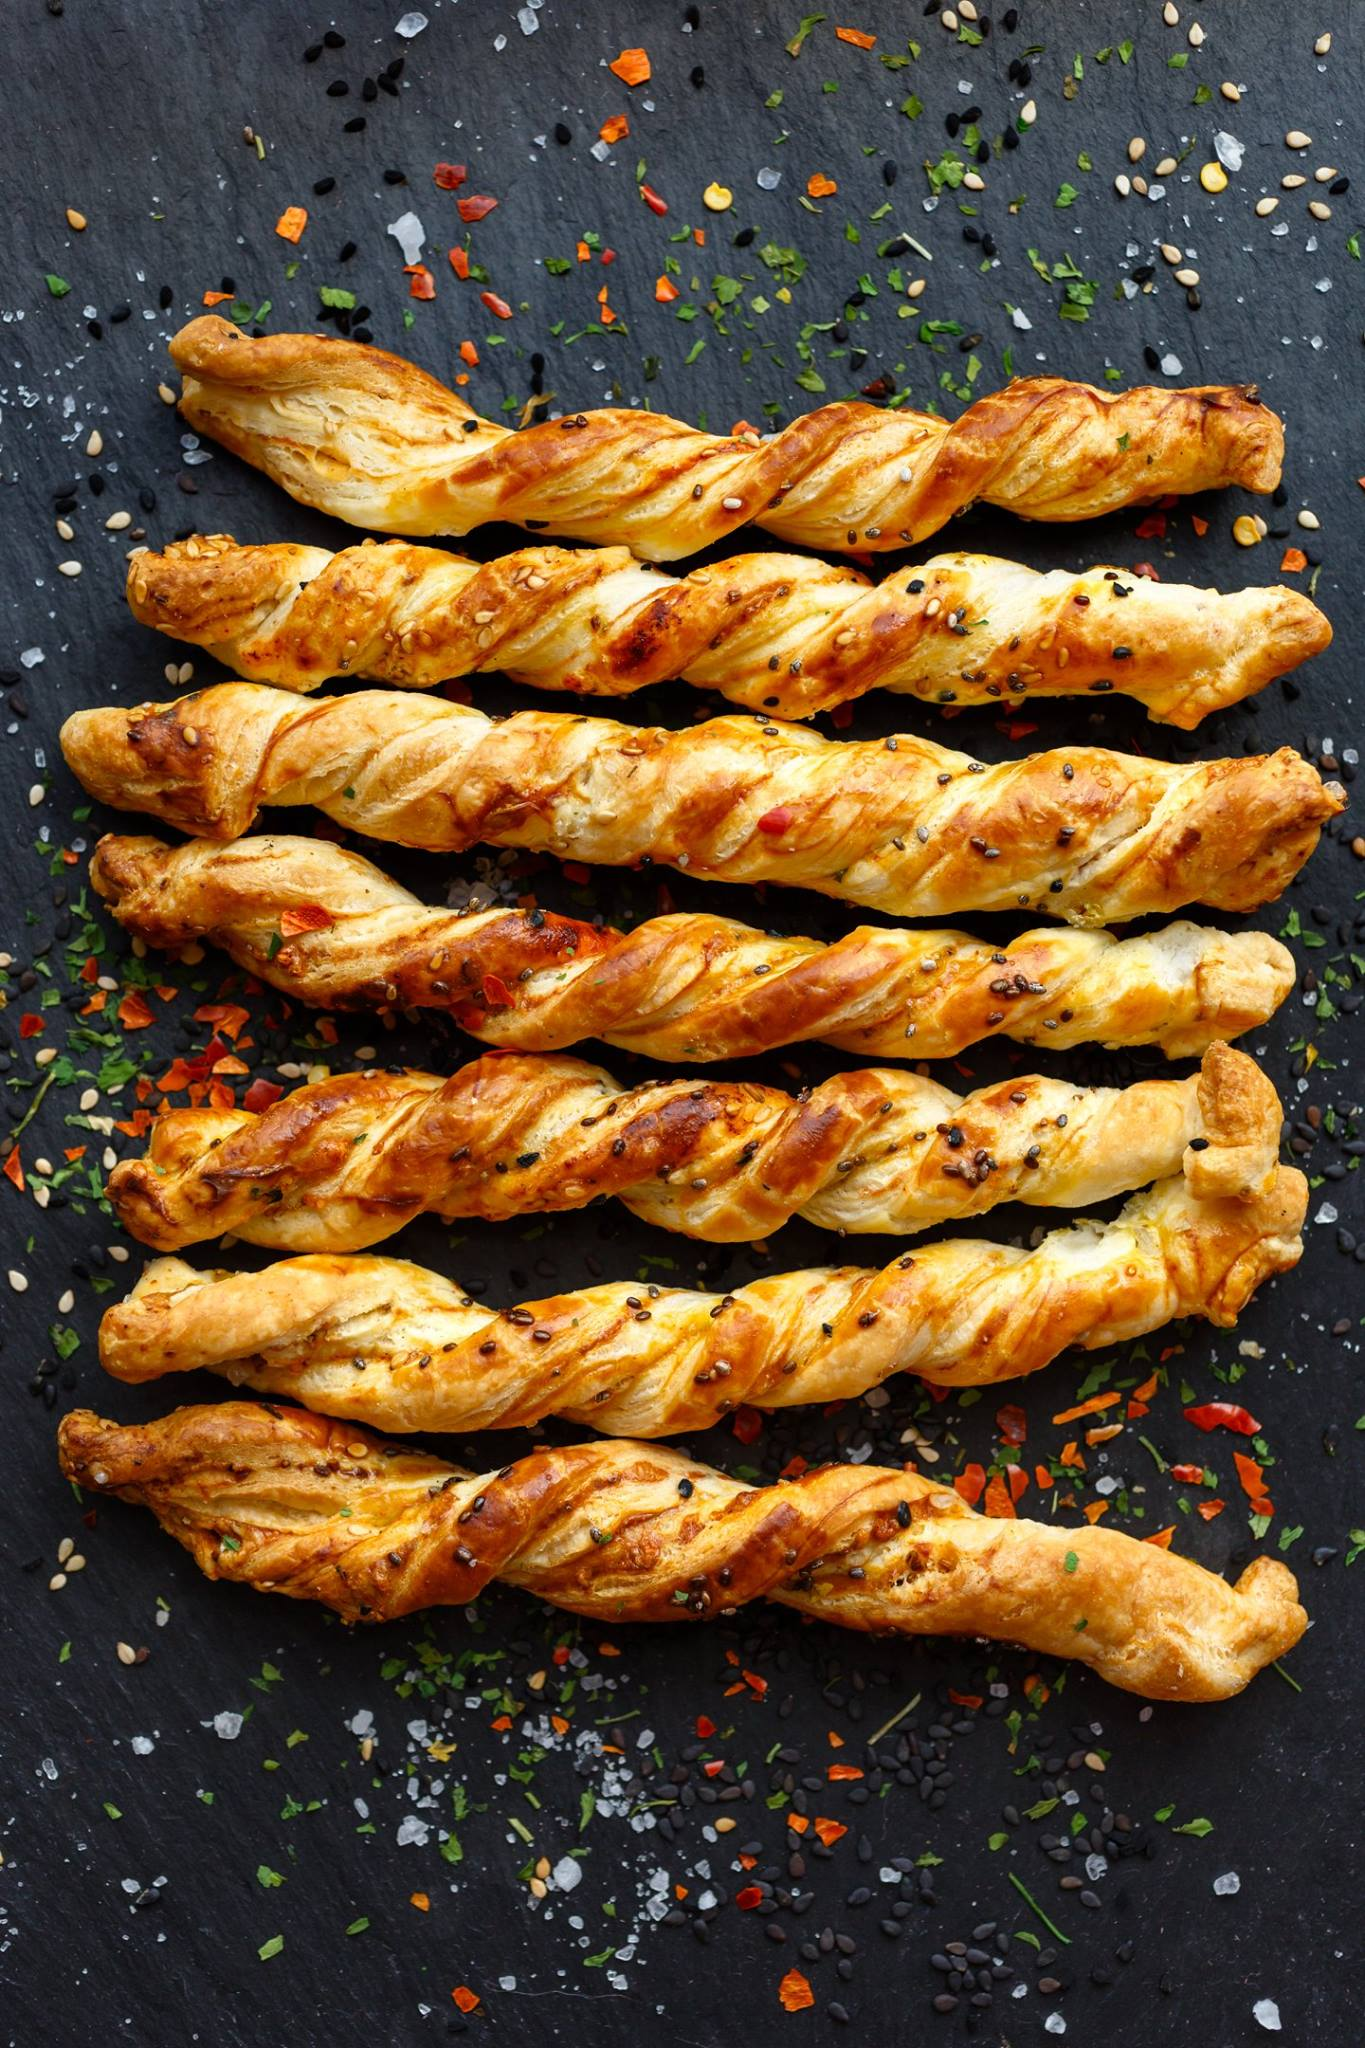 Whip up a batch of delicious cheese straws, made using Kalari, an Indian origin #cheese. This delightfully crunchy #snack is surely going to earn you a dozen compliments at your next party.